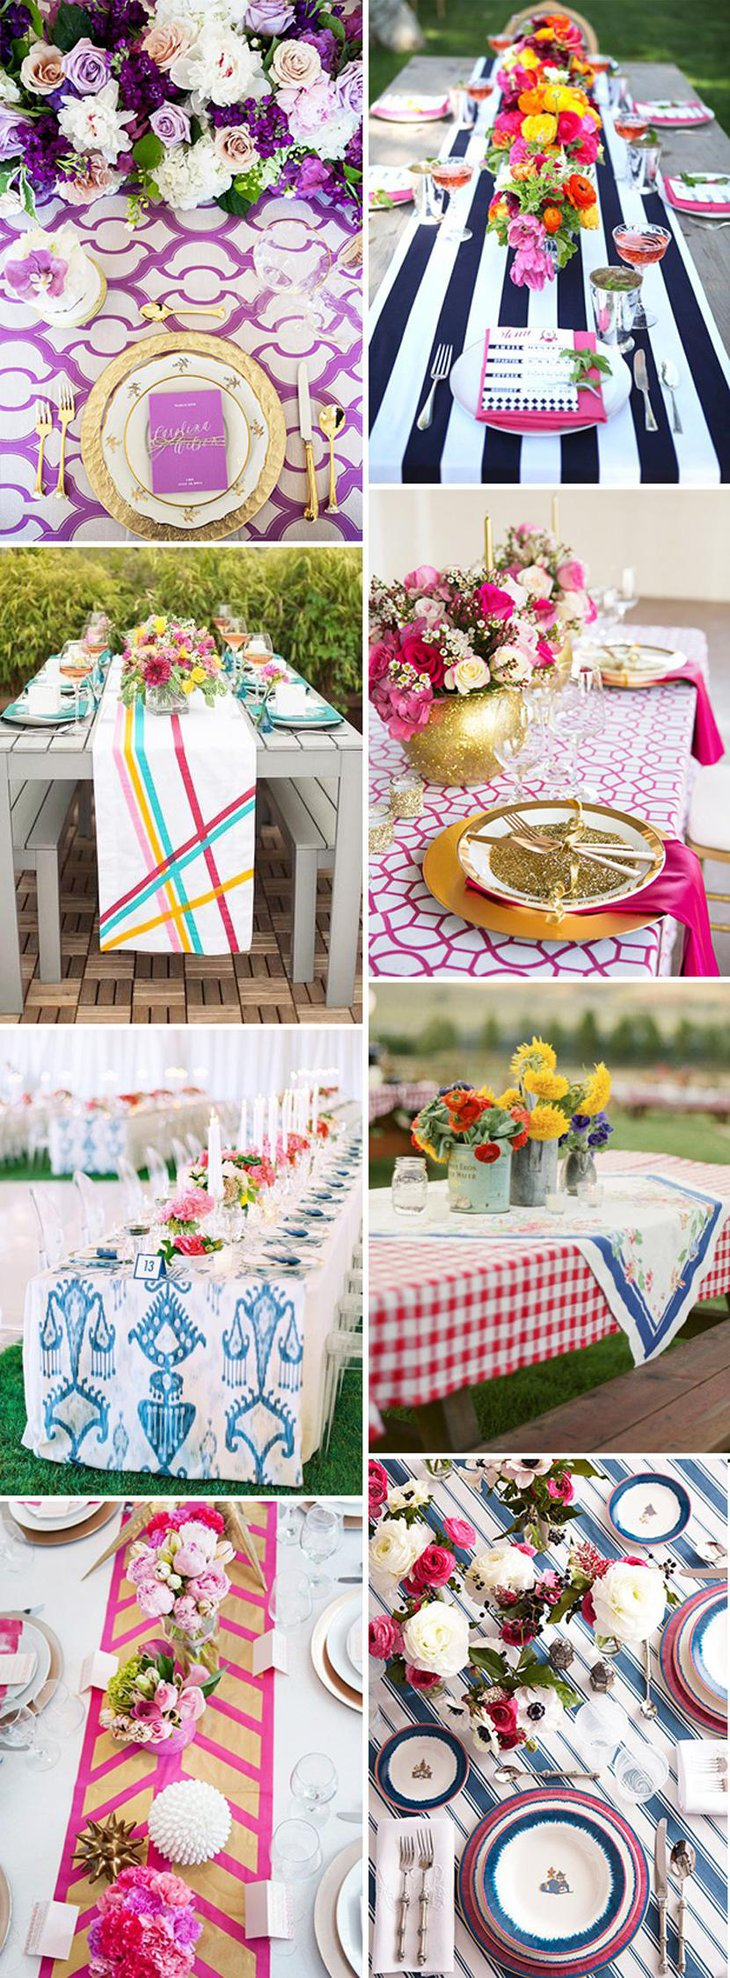 Artistic Bright and Bold Wedding Table Linens